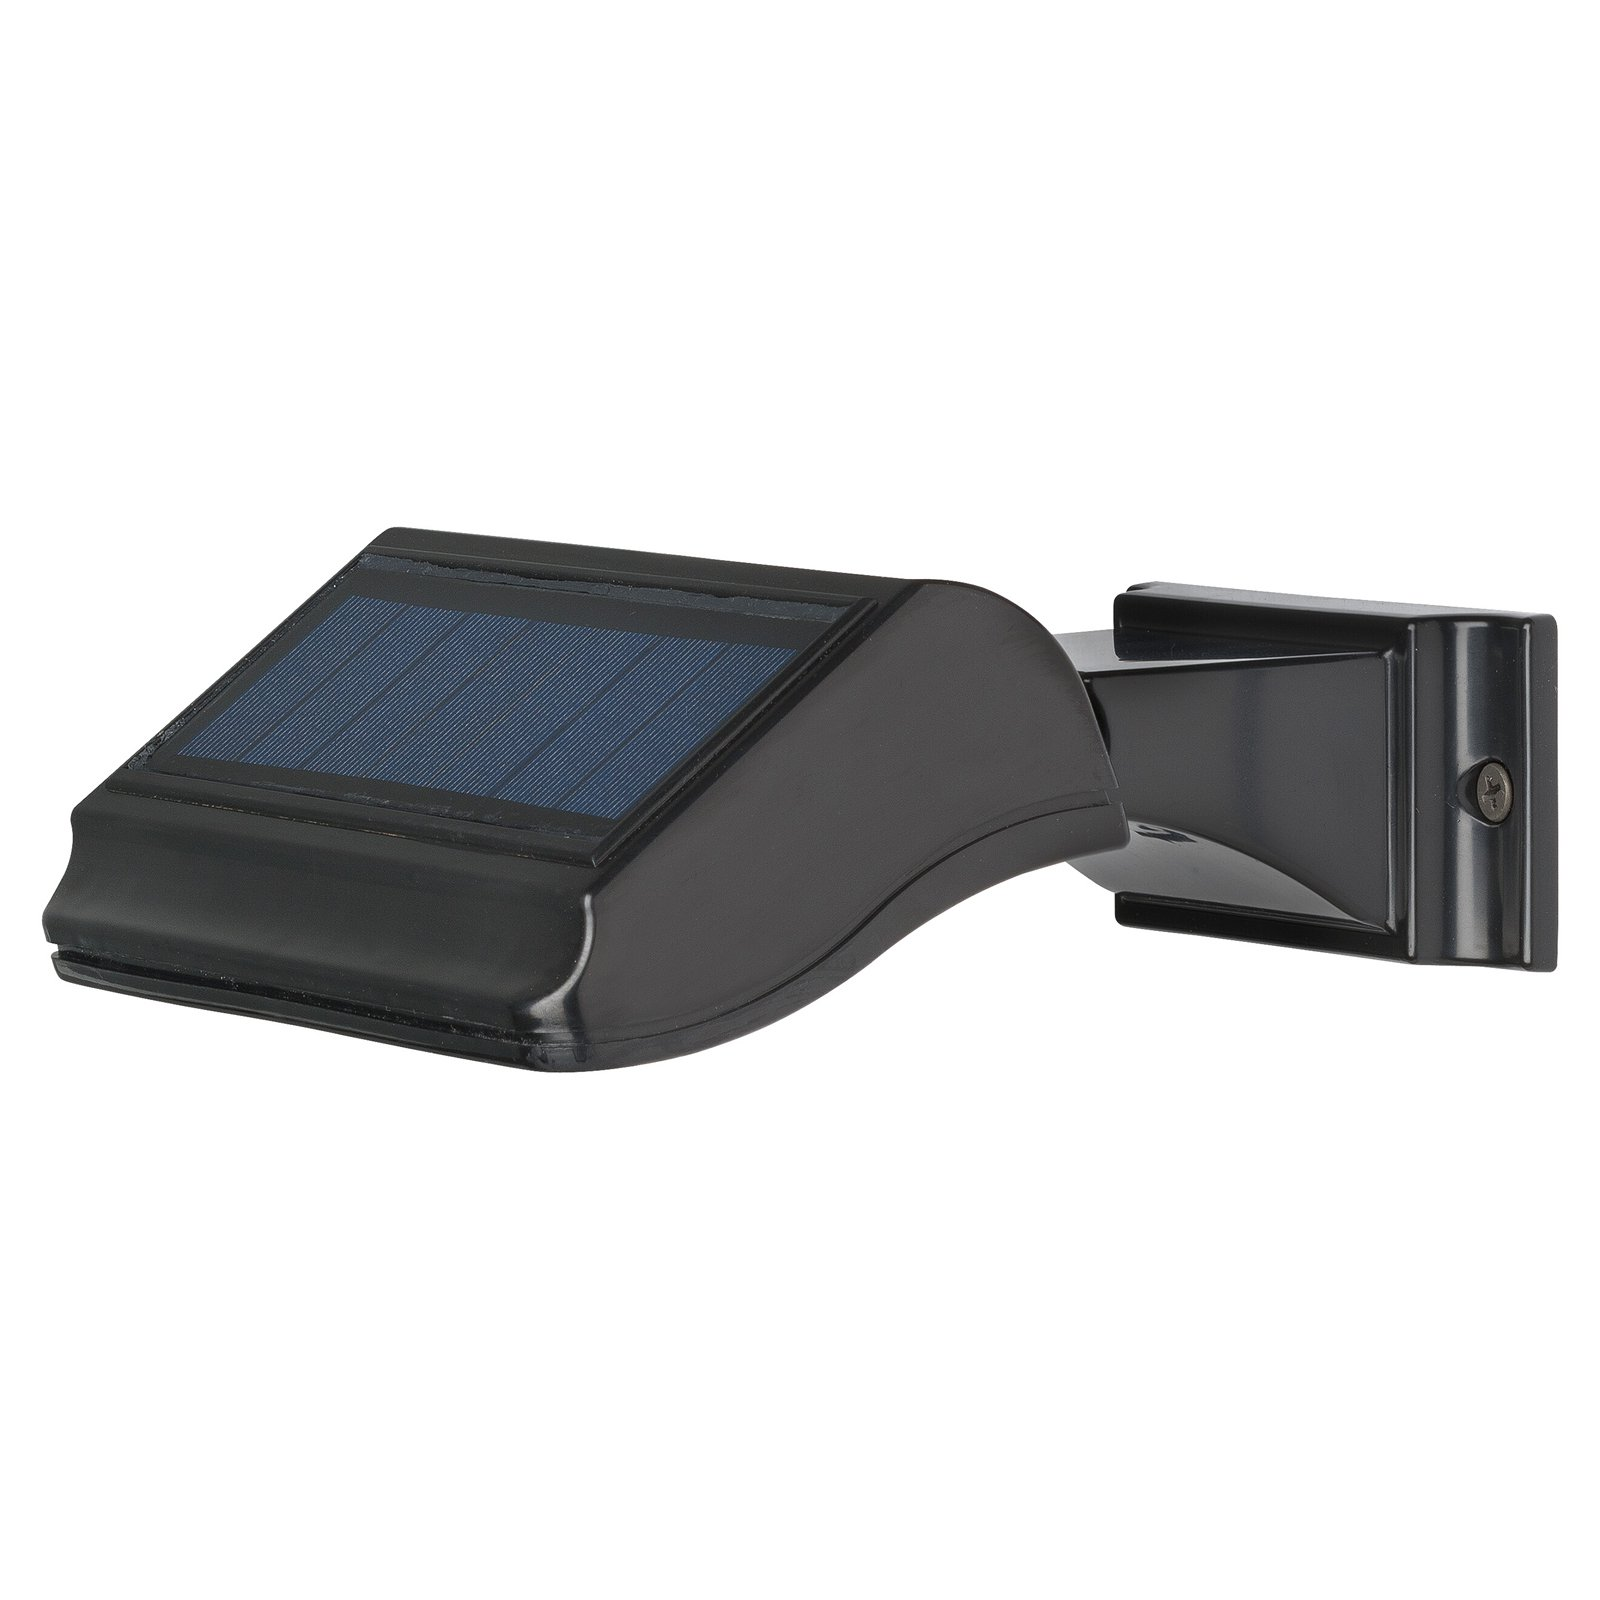 Whitehall Illuminator Solar Wall Mounted Address Lamp by White Hall Products